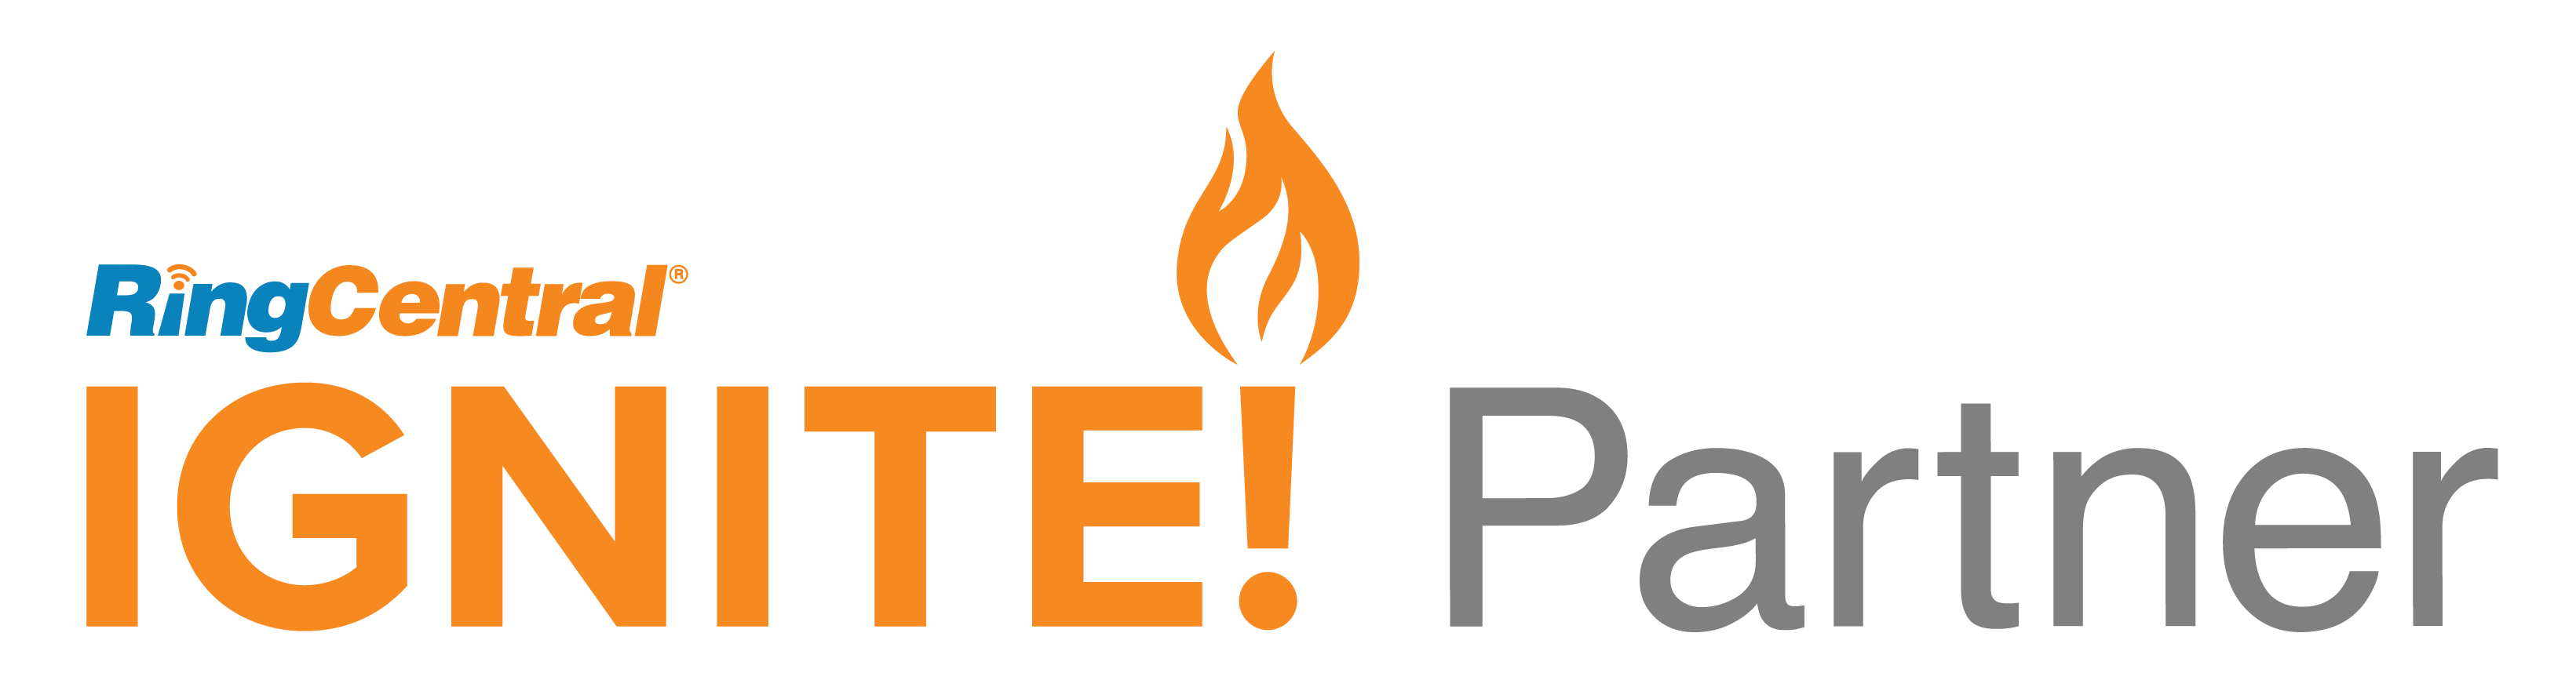 Ignite partner logo